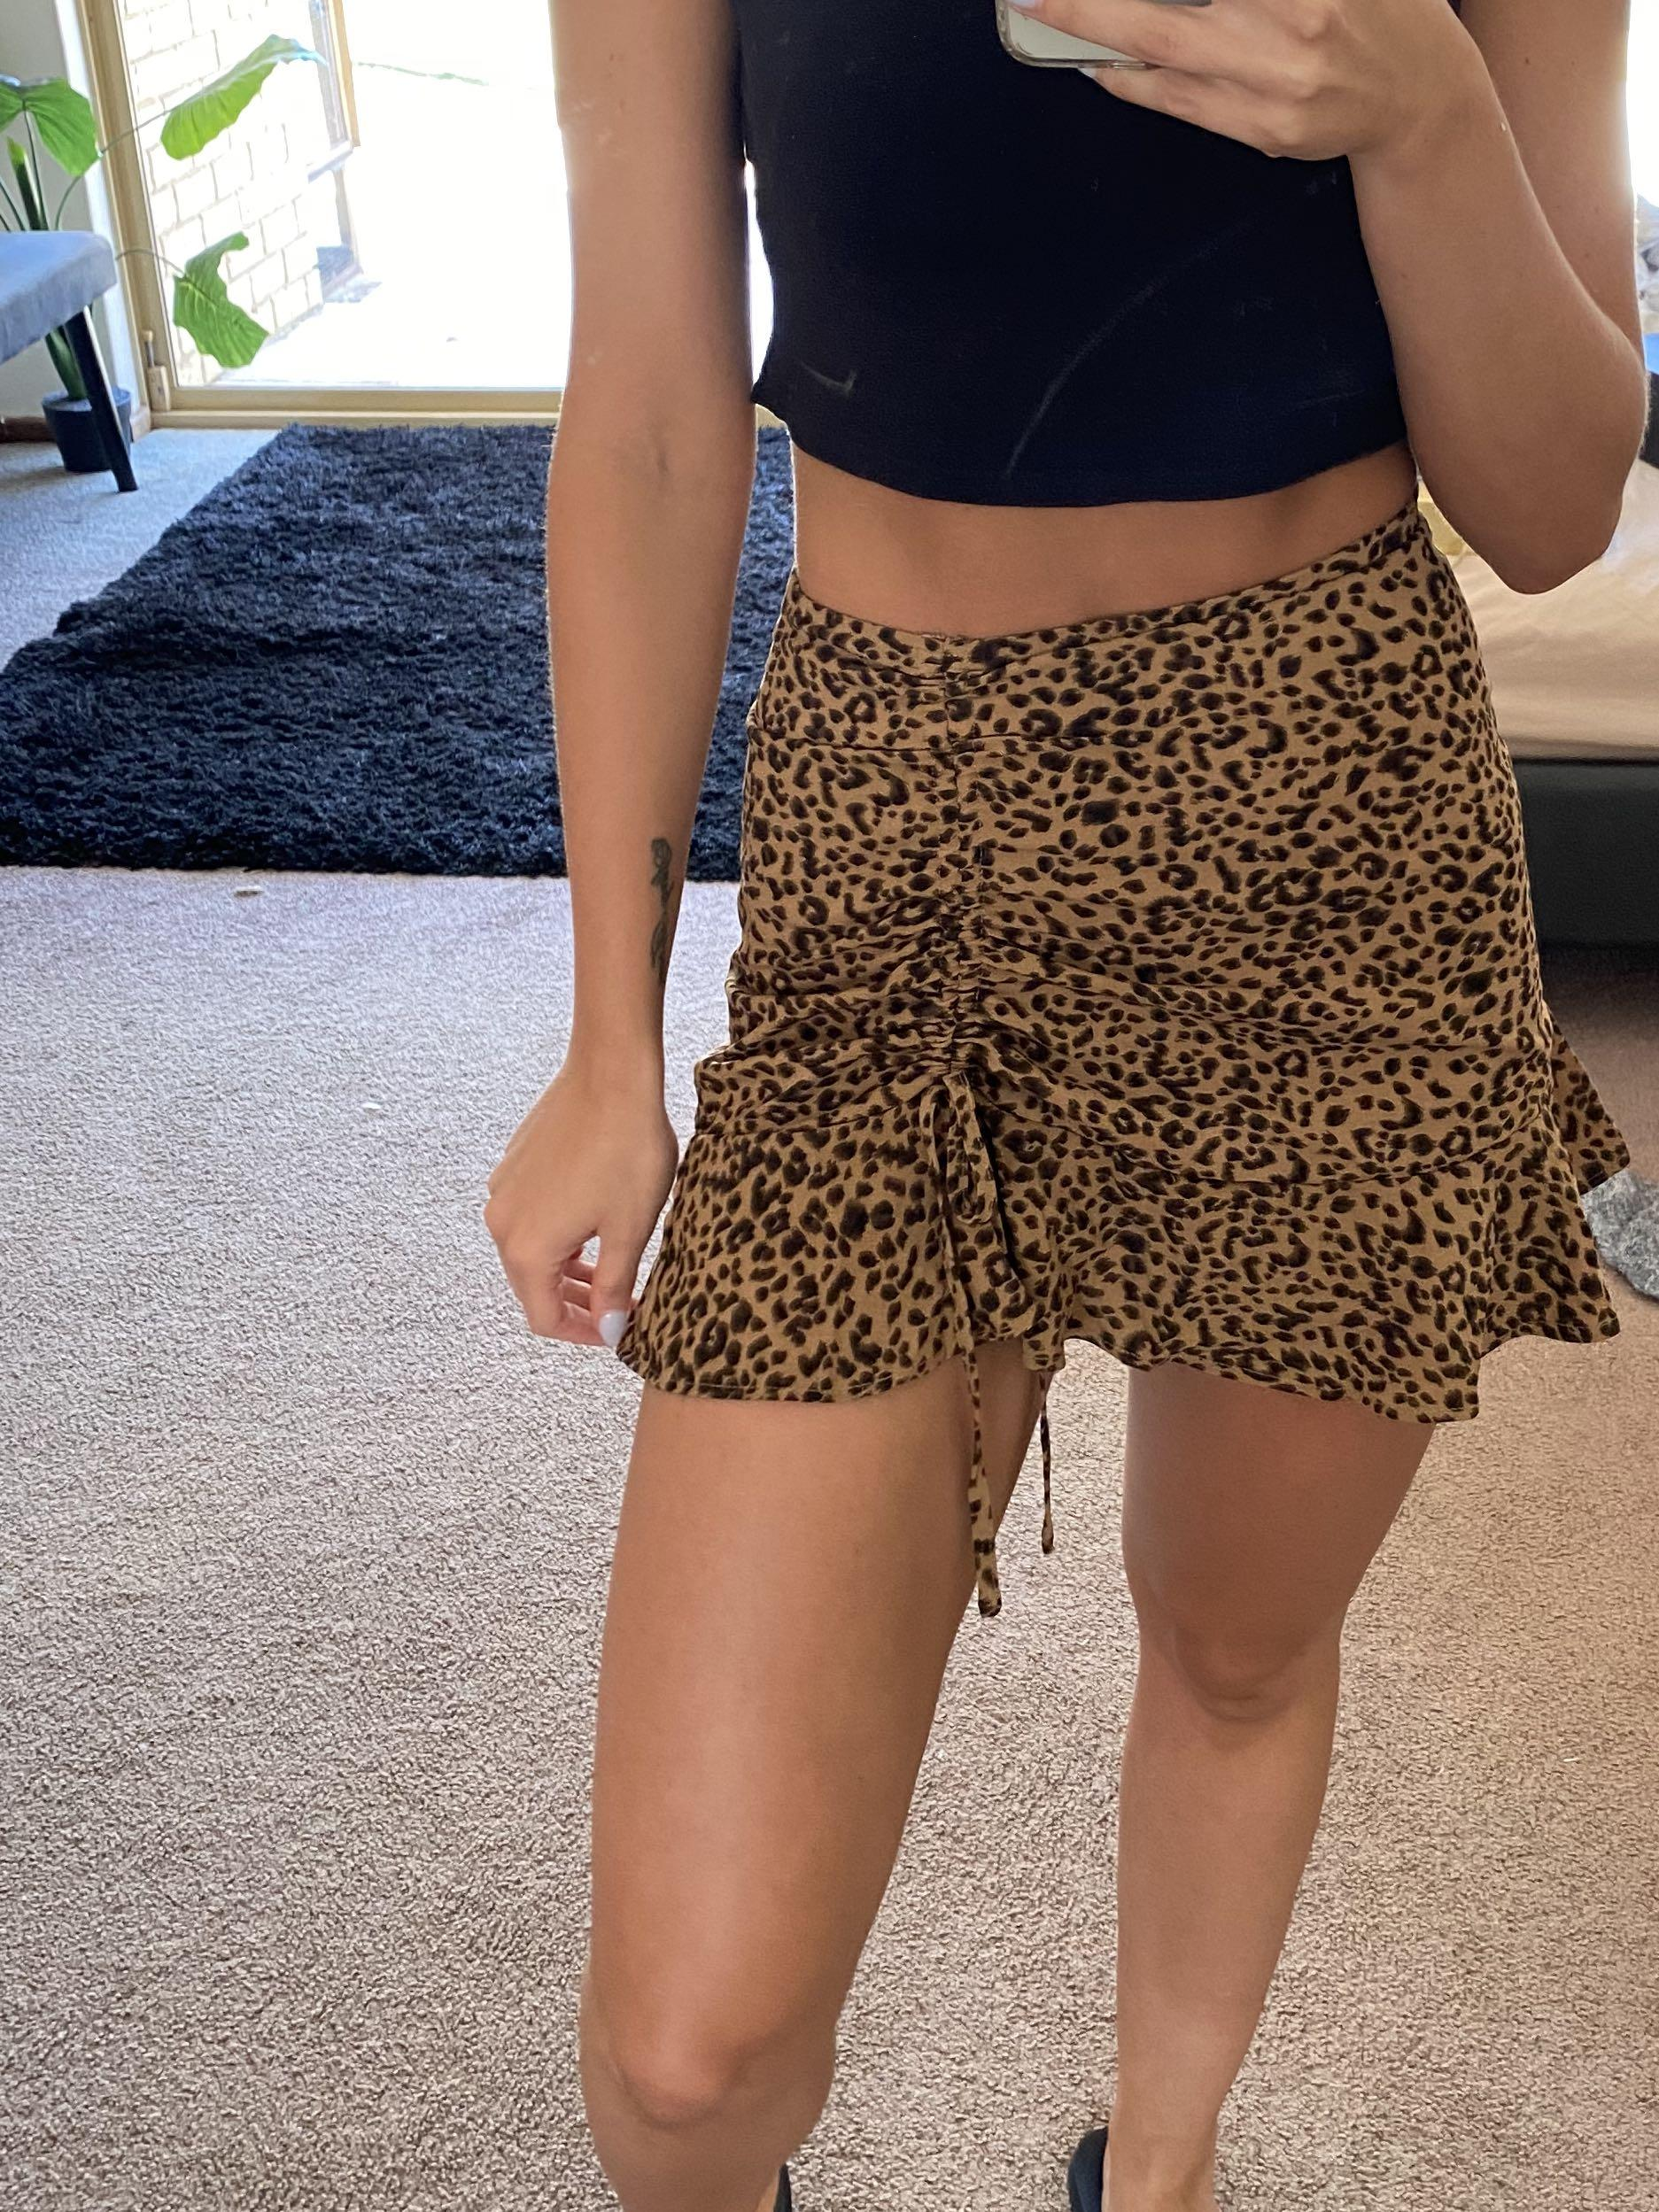 FREE UNTRACKED POSTAGE - General pants leopard print ruched mini skirt - size 6 - worn once